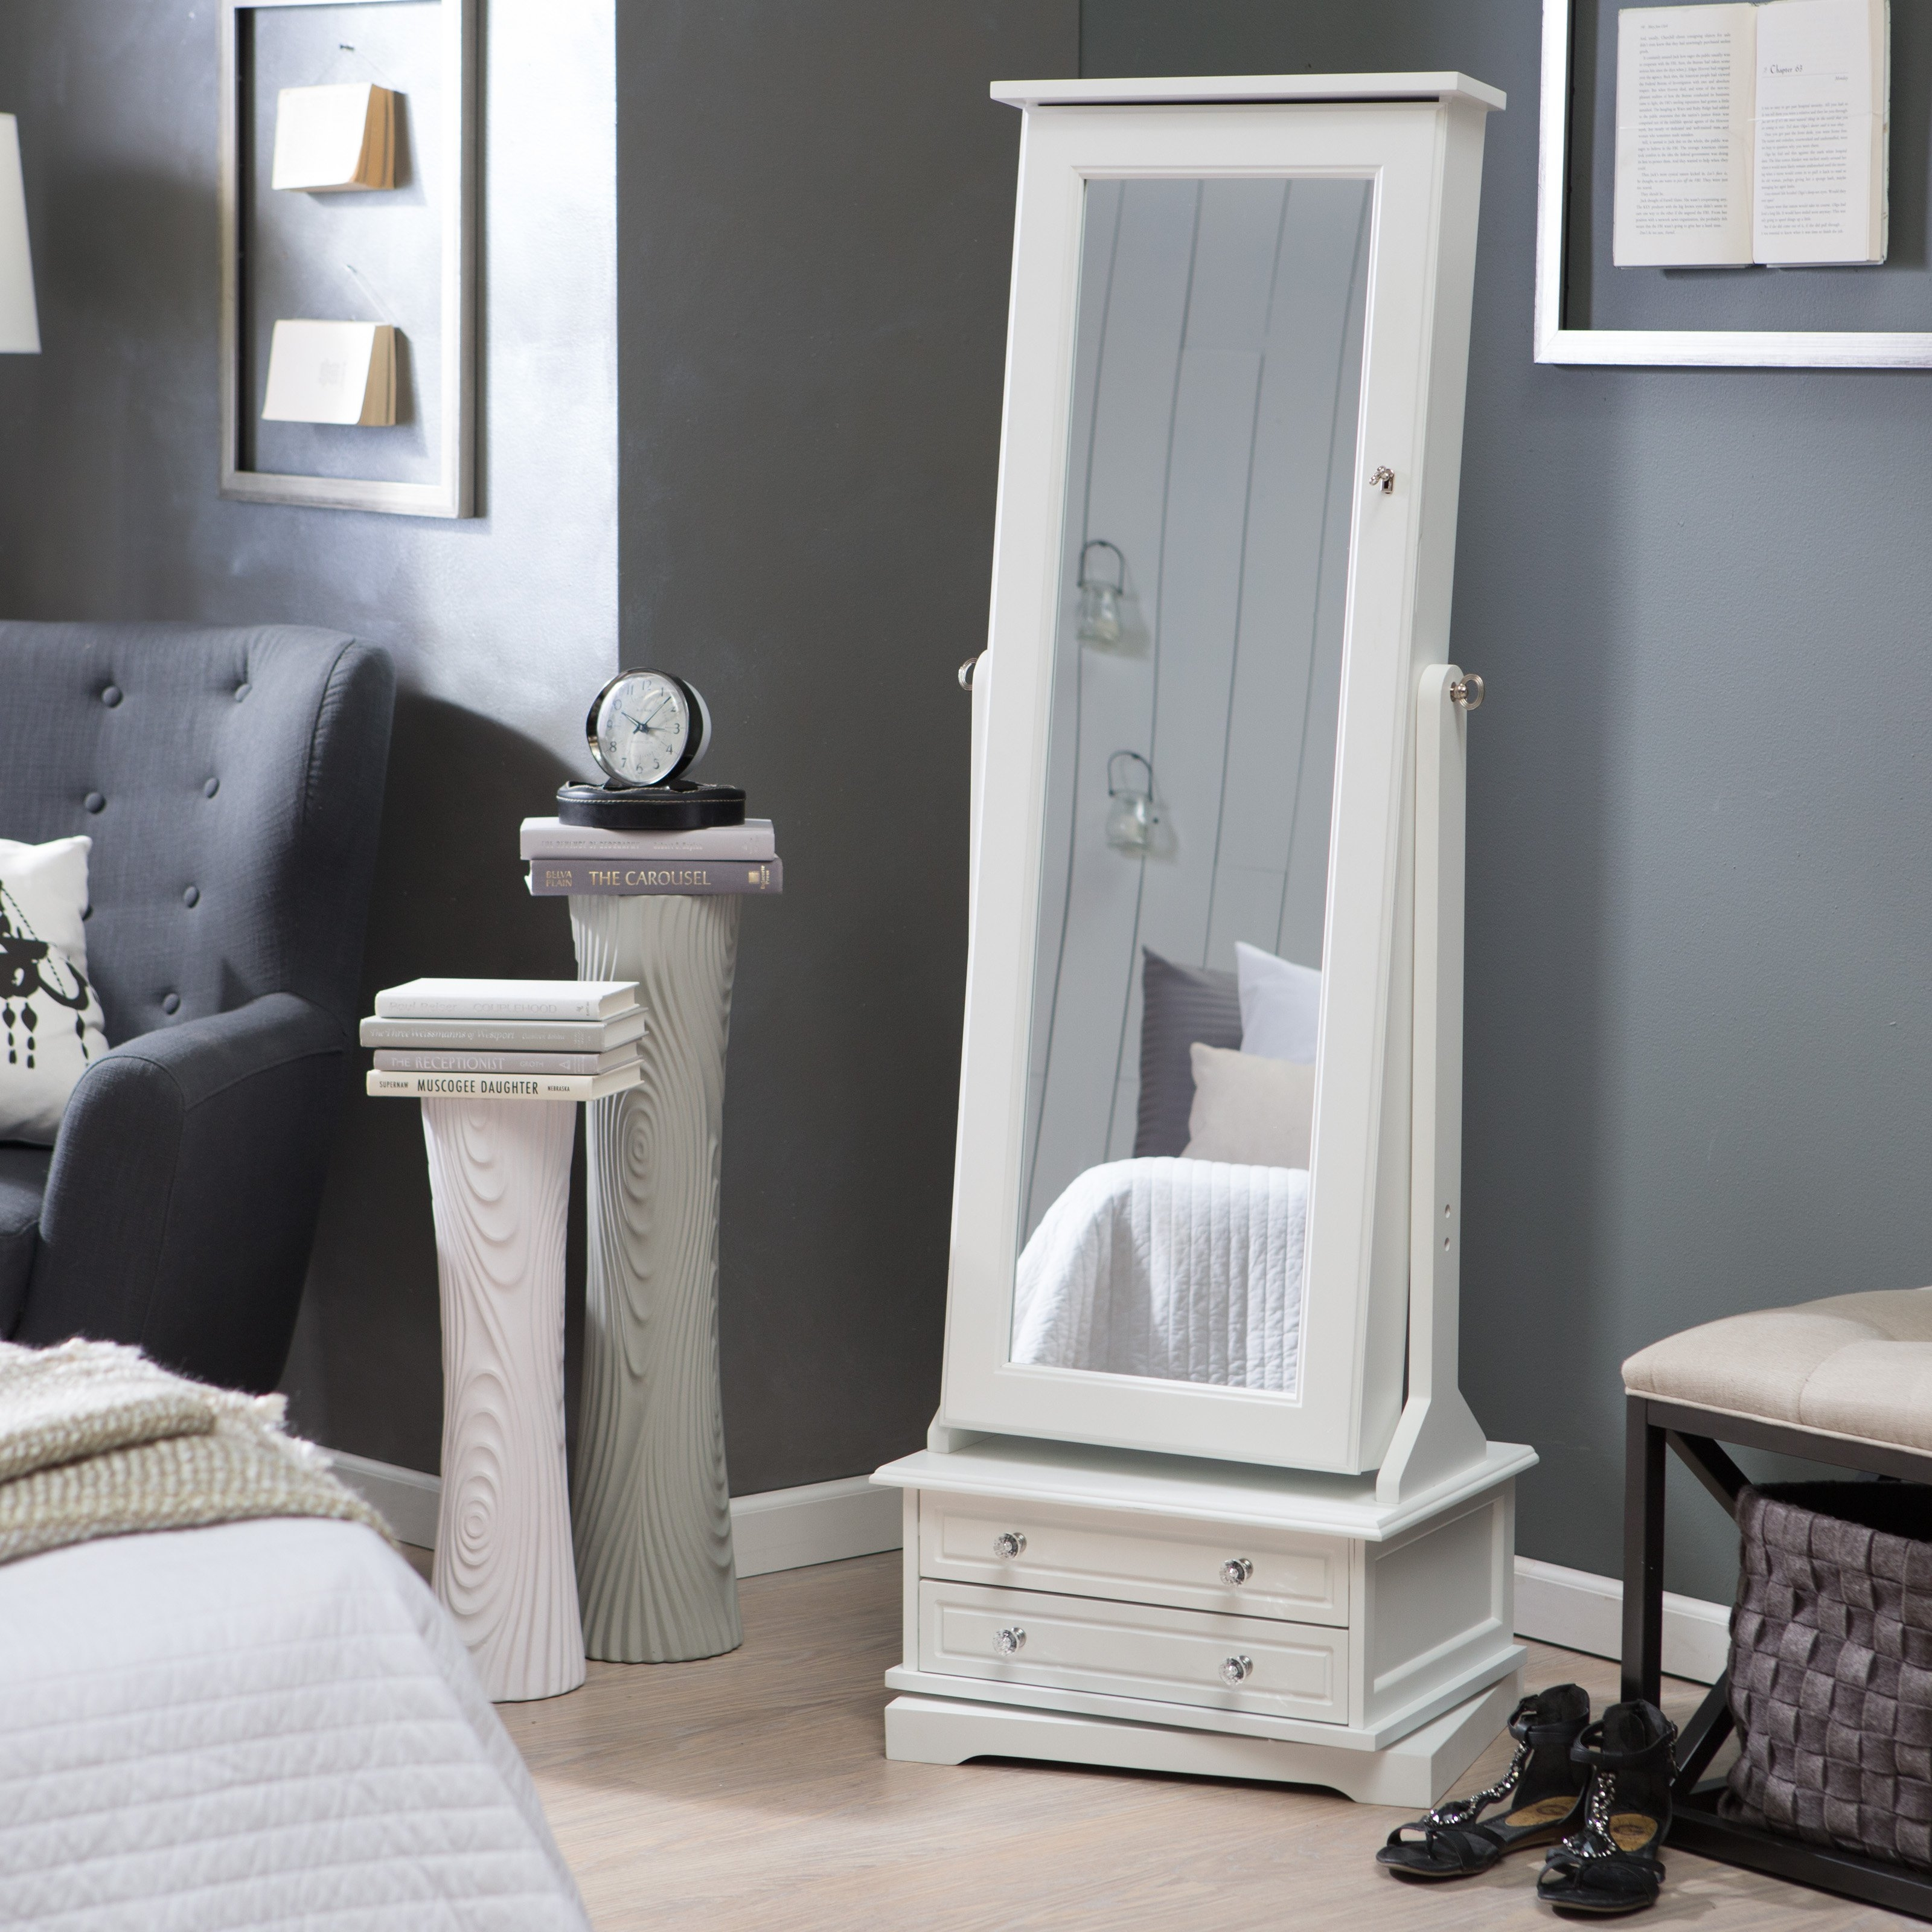 Free Standing White Mirror Full Length Mirror Design Ideas Inside Free Standing Long Mirror (Image 7 of 15)